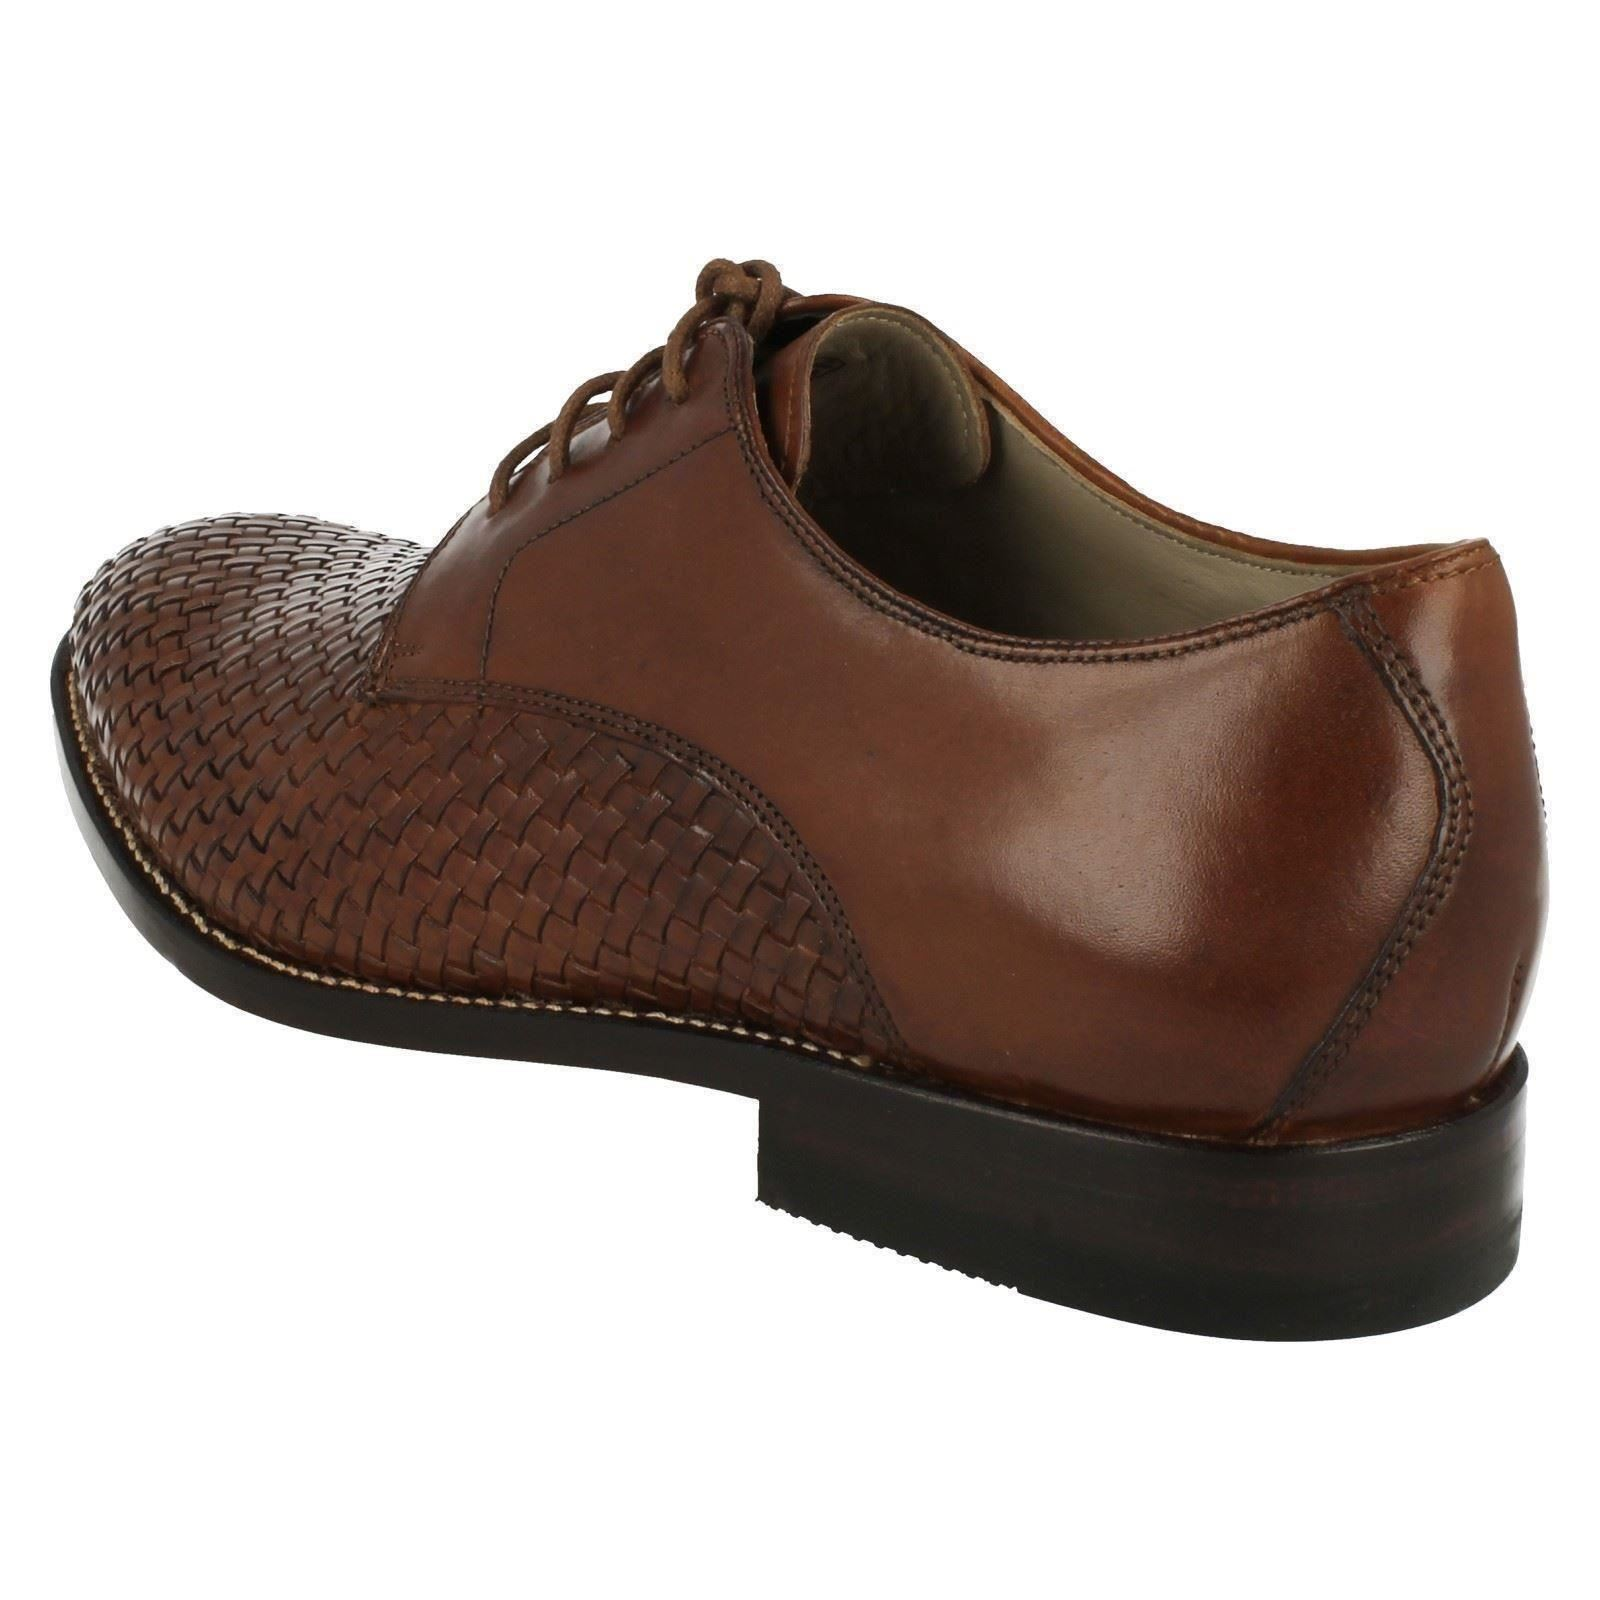 Uomo Clarks Smart Lace Up Schuhes Schuhes Schuhes Twinley Lace 9c6481